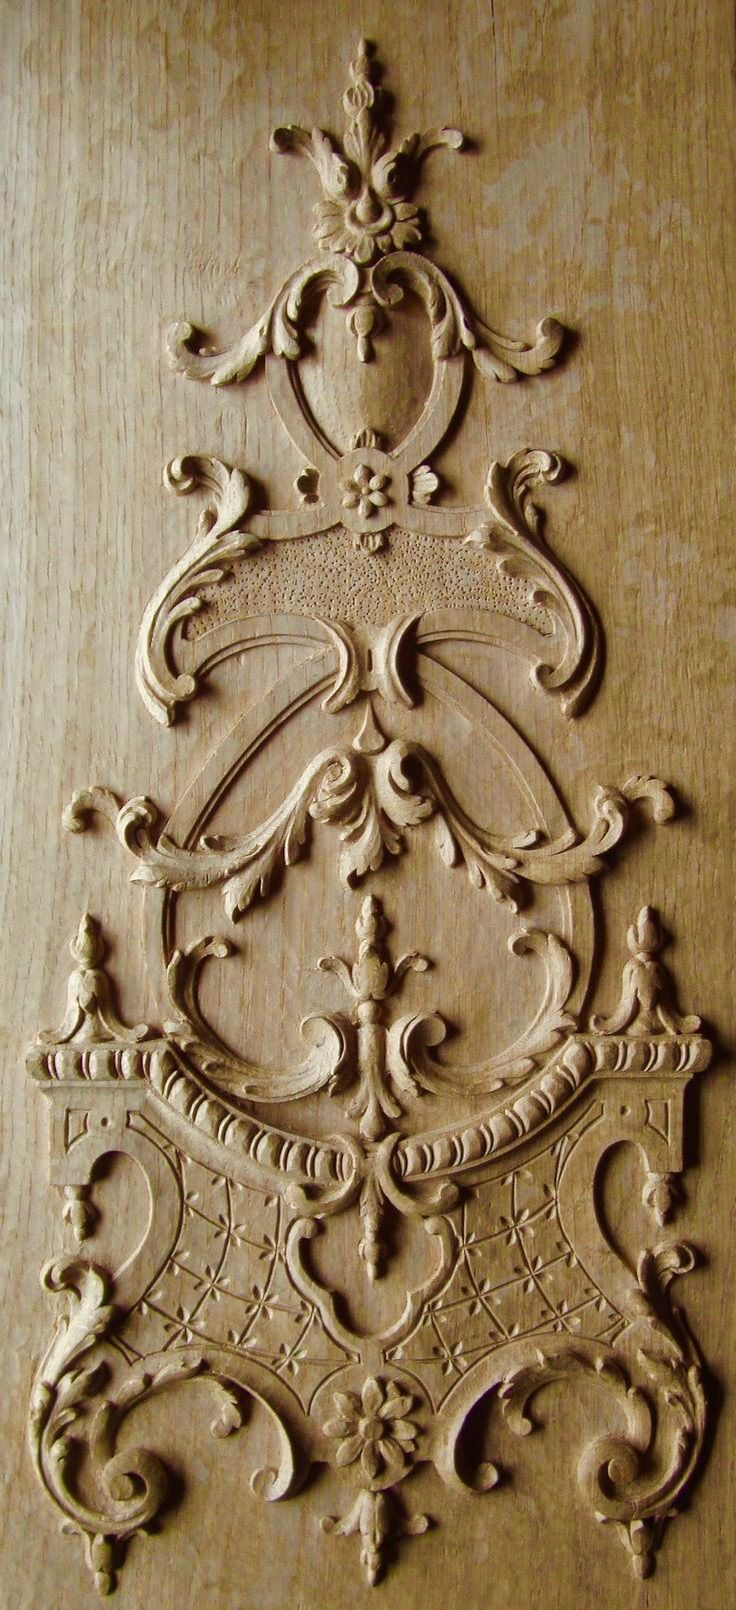 best woodwork images on pinterest woodwork wood and product design